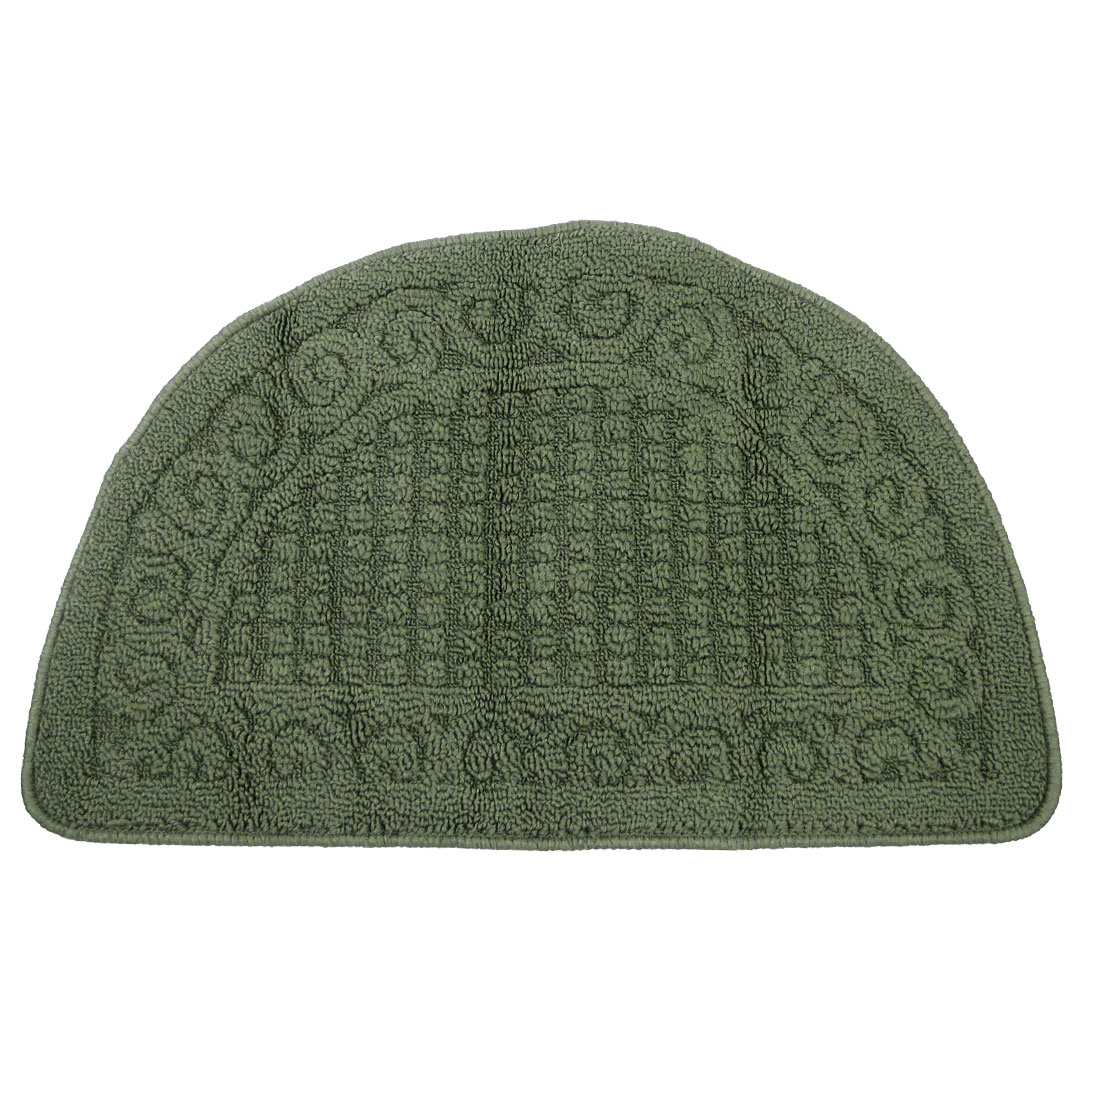 Rubber Backing Dark Green Half Round Room Floor Cloth Carpet Mat 40 x 63cm